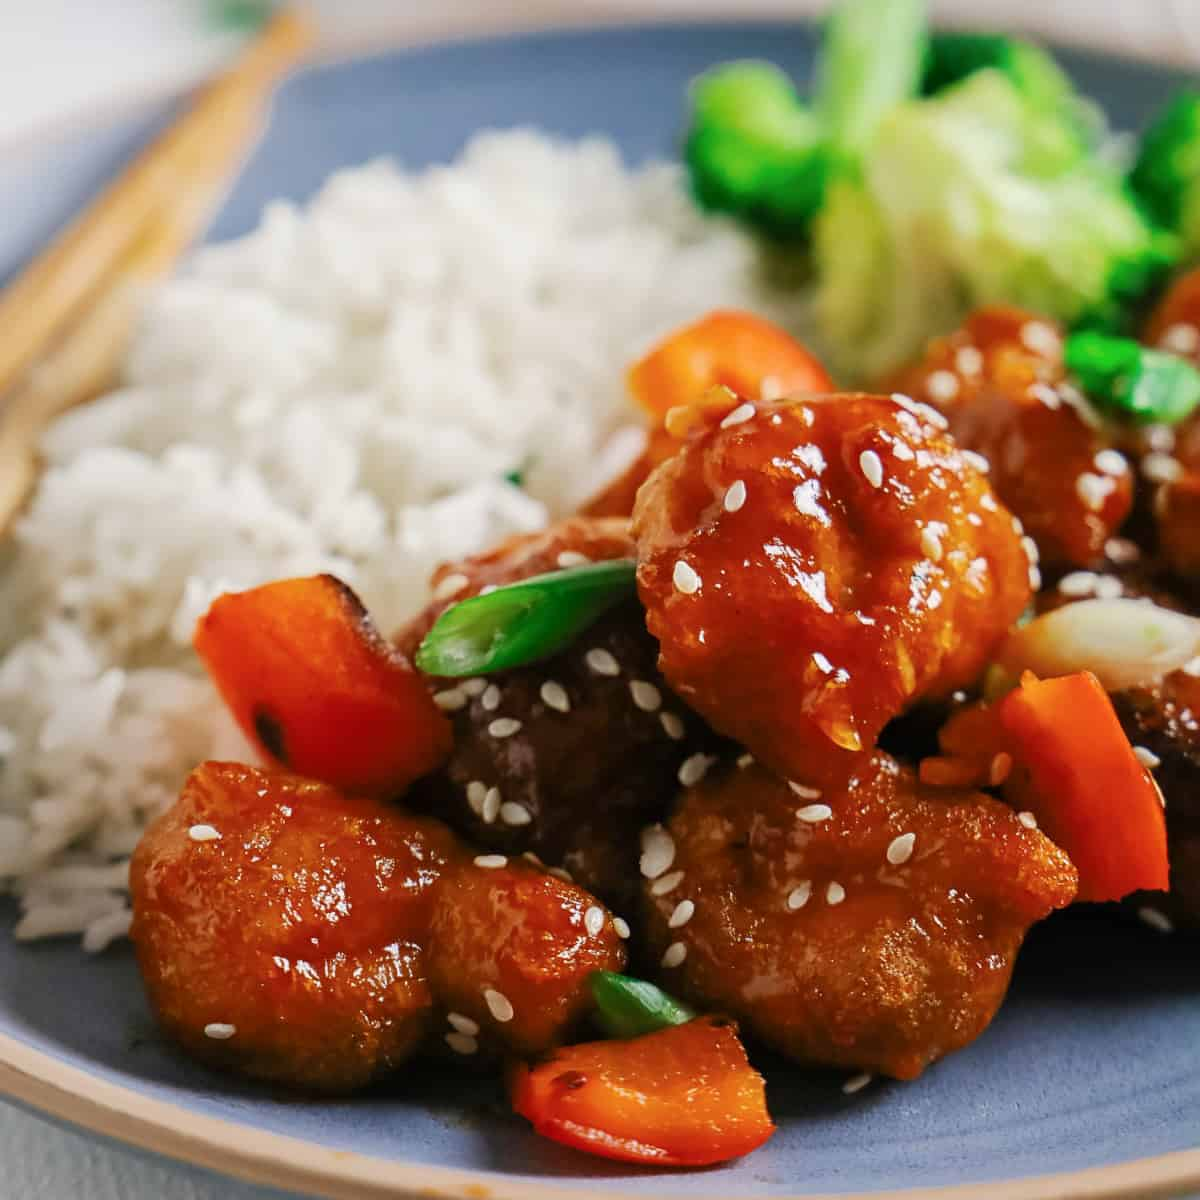 Sweet and Sour Pork with rice and broccoli in a square picture.